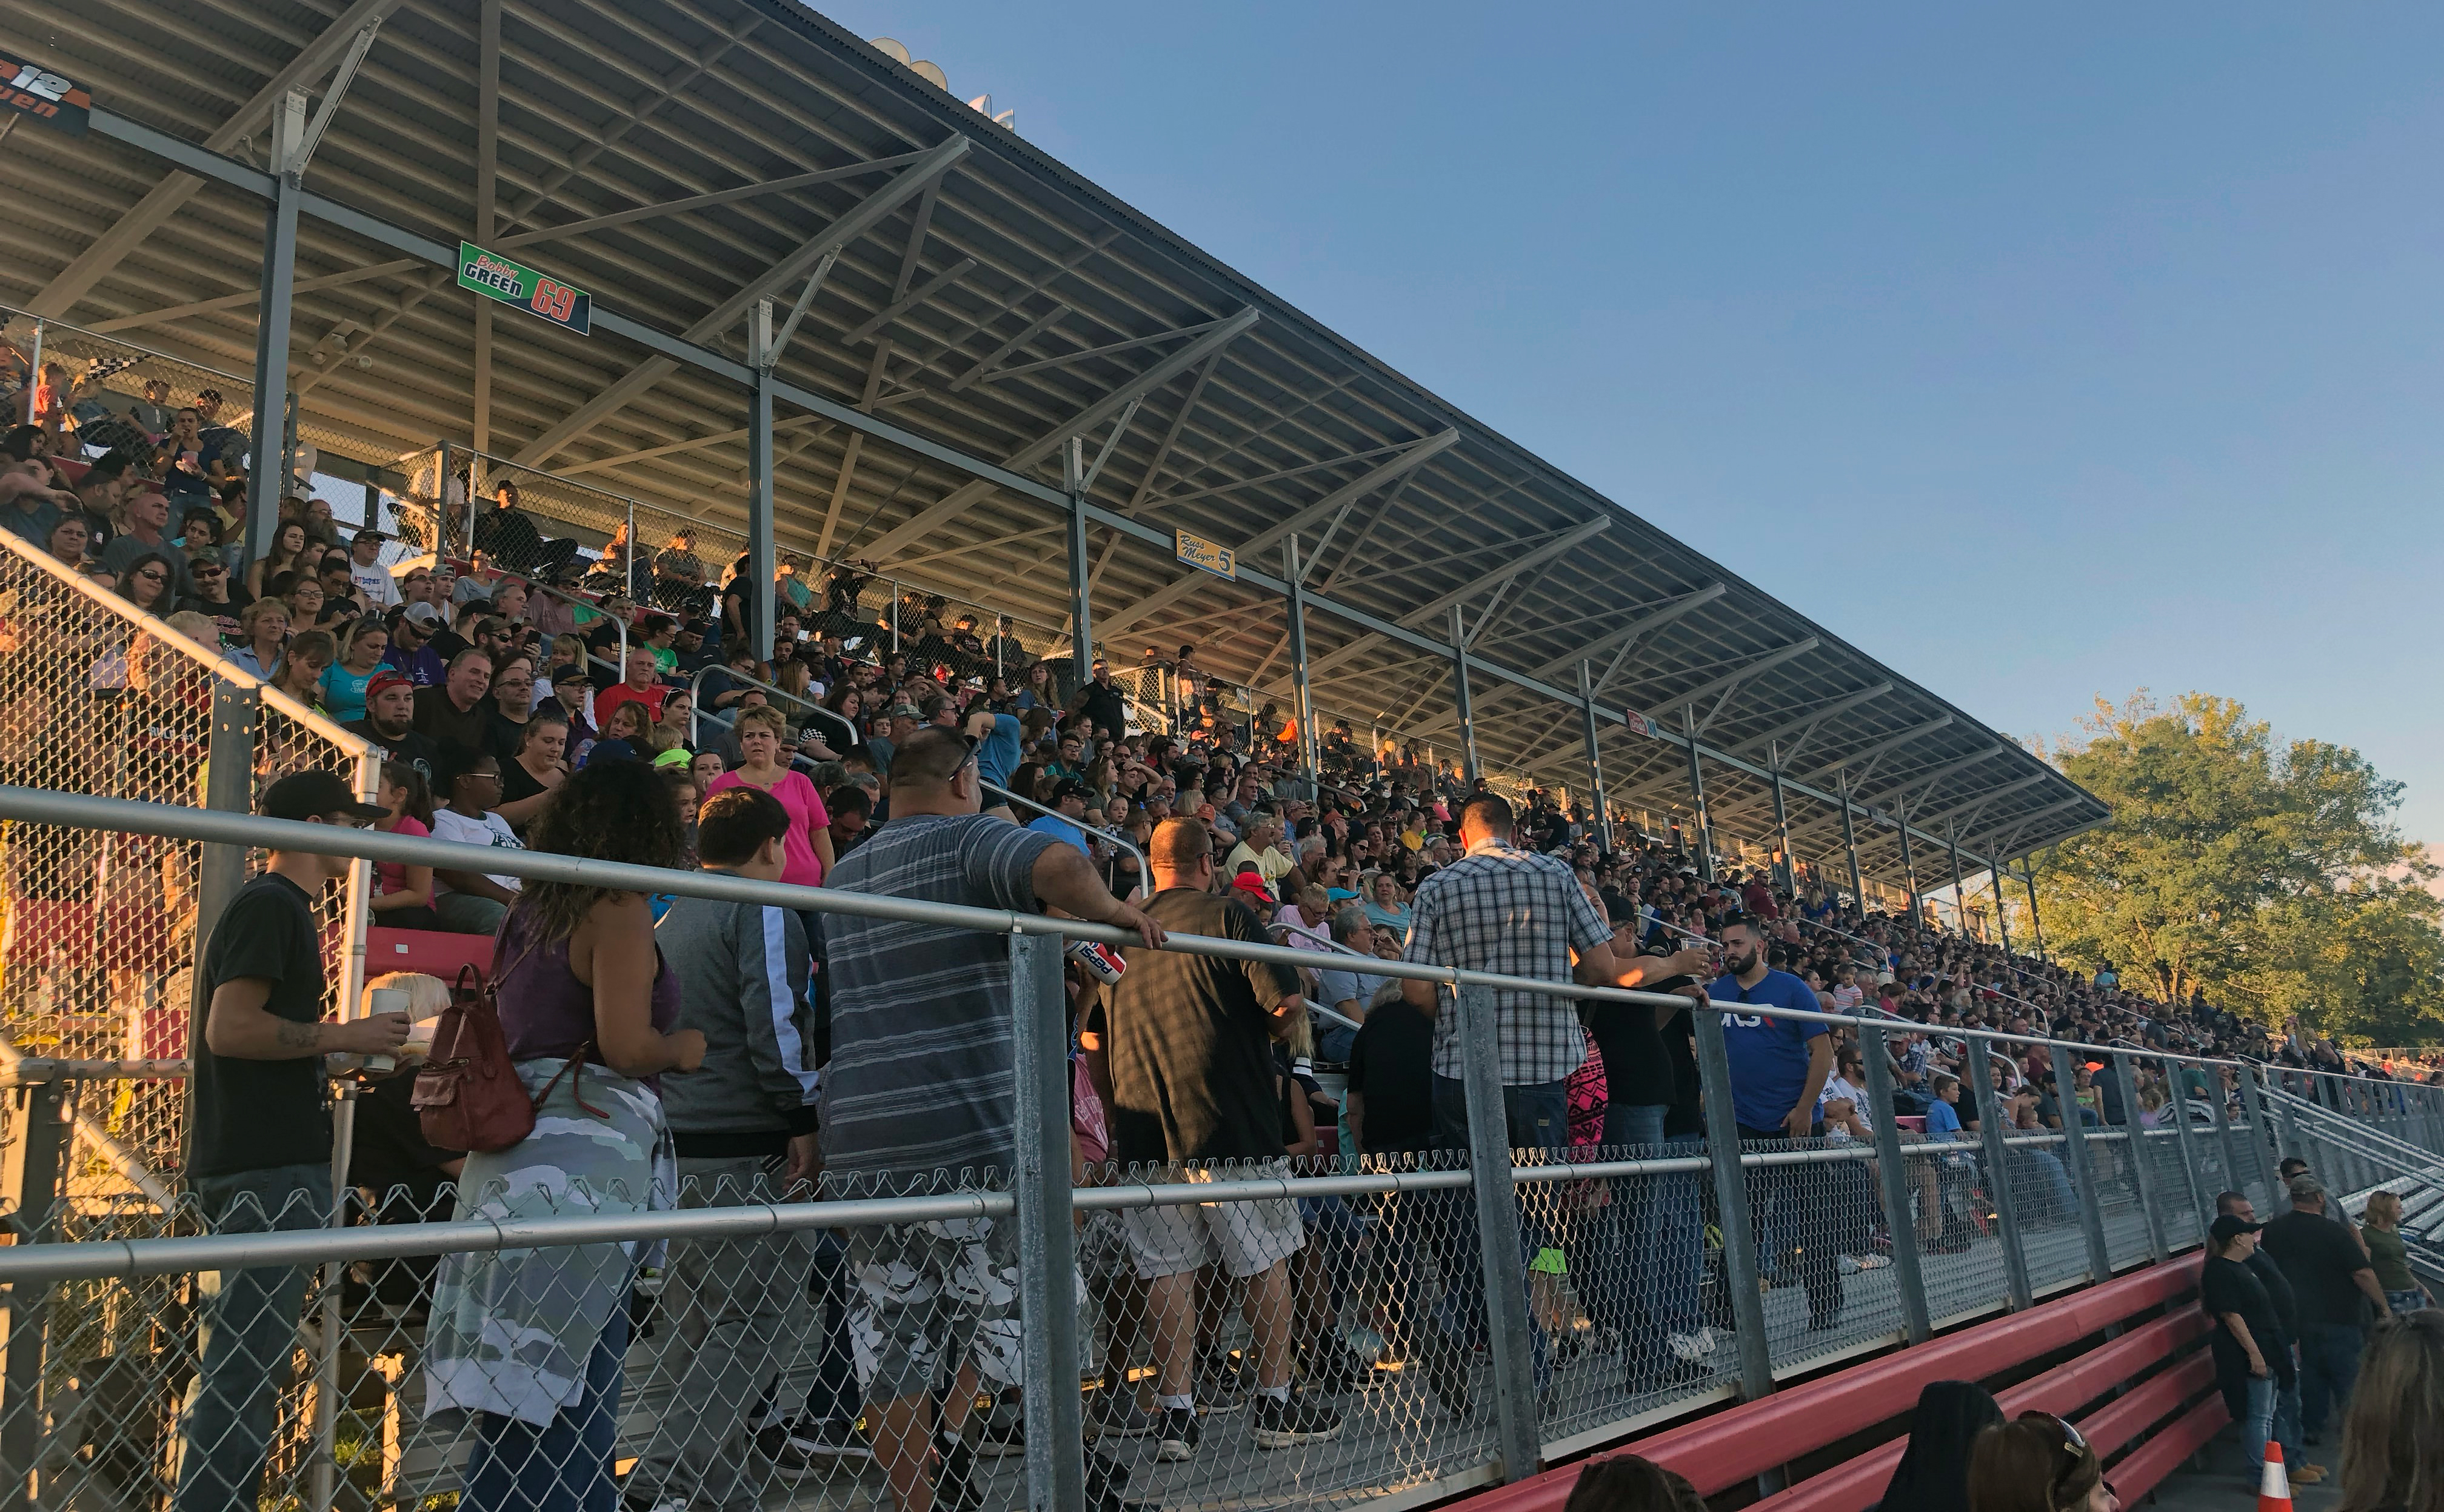 Fans load into the half covered grandstand on the Speedway's front stretch.